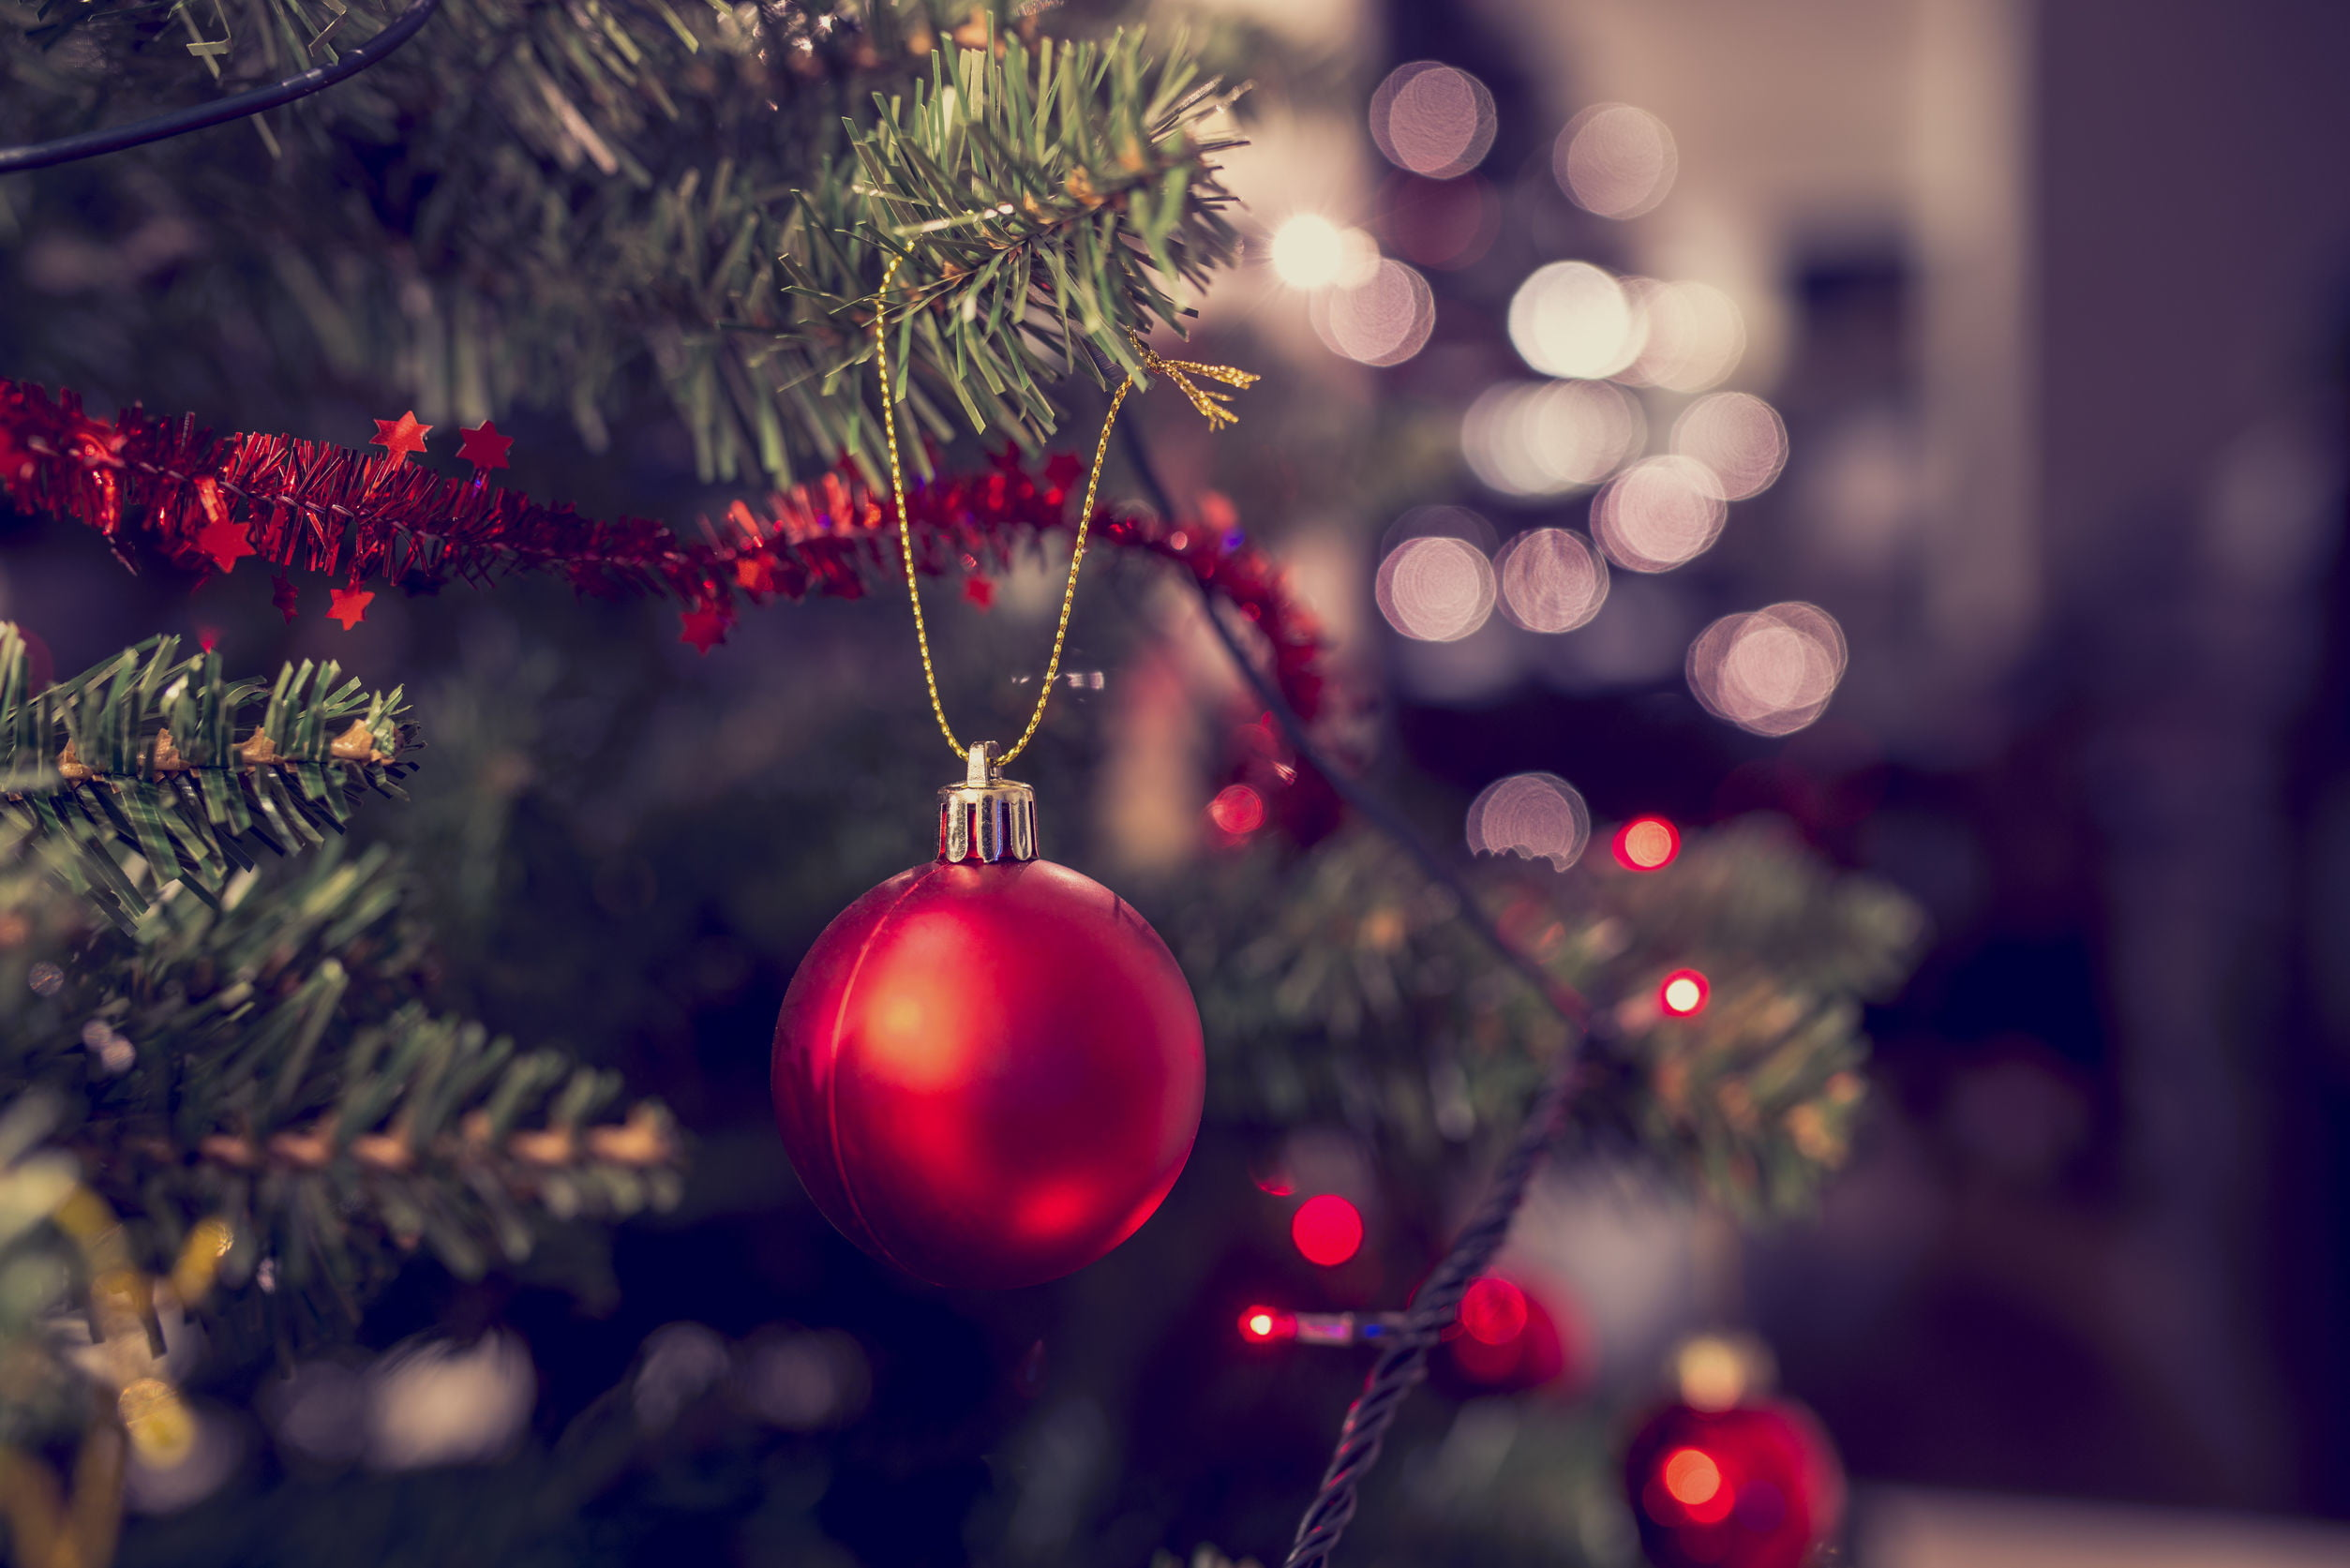 How Should You Recycle Your Christmas Tree This Year? | Digital Trends